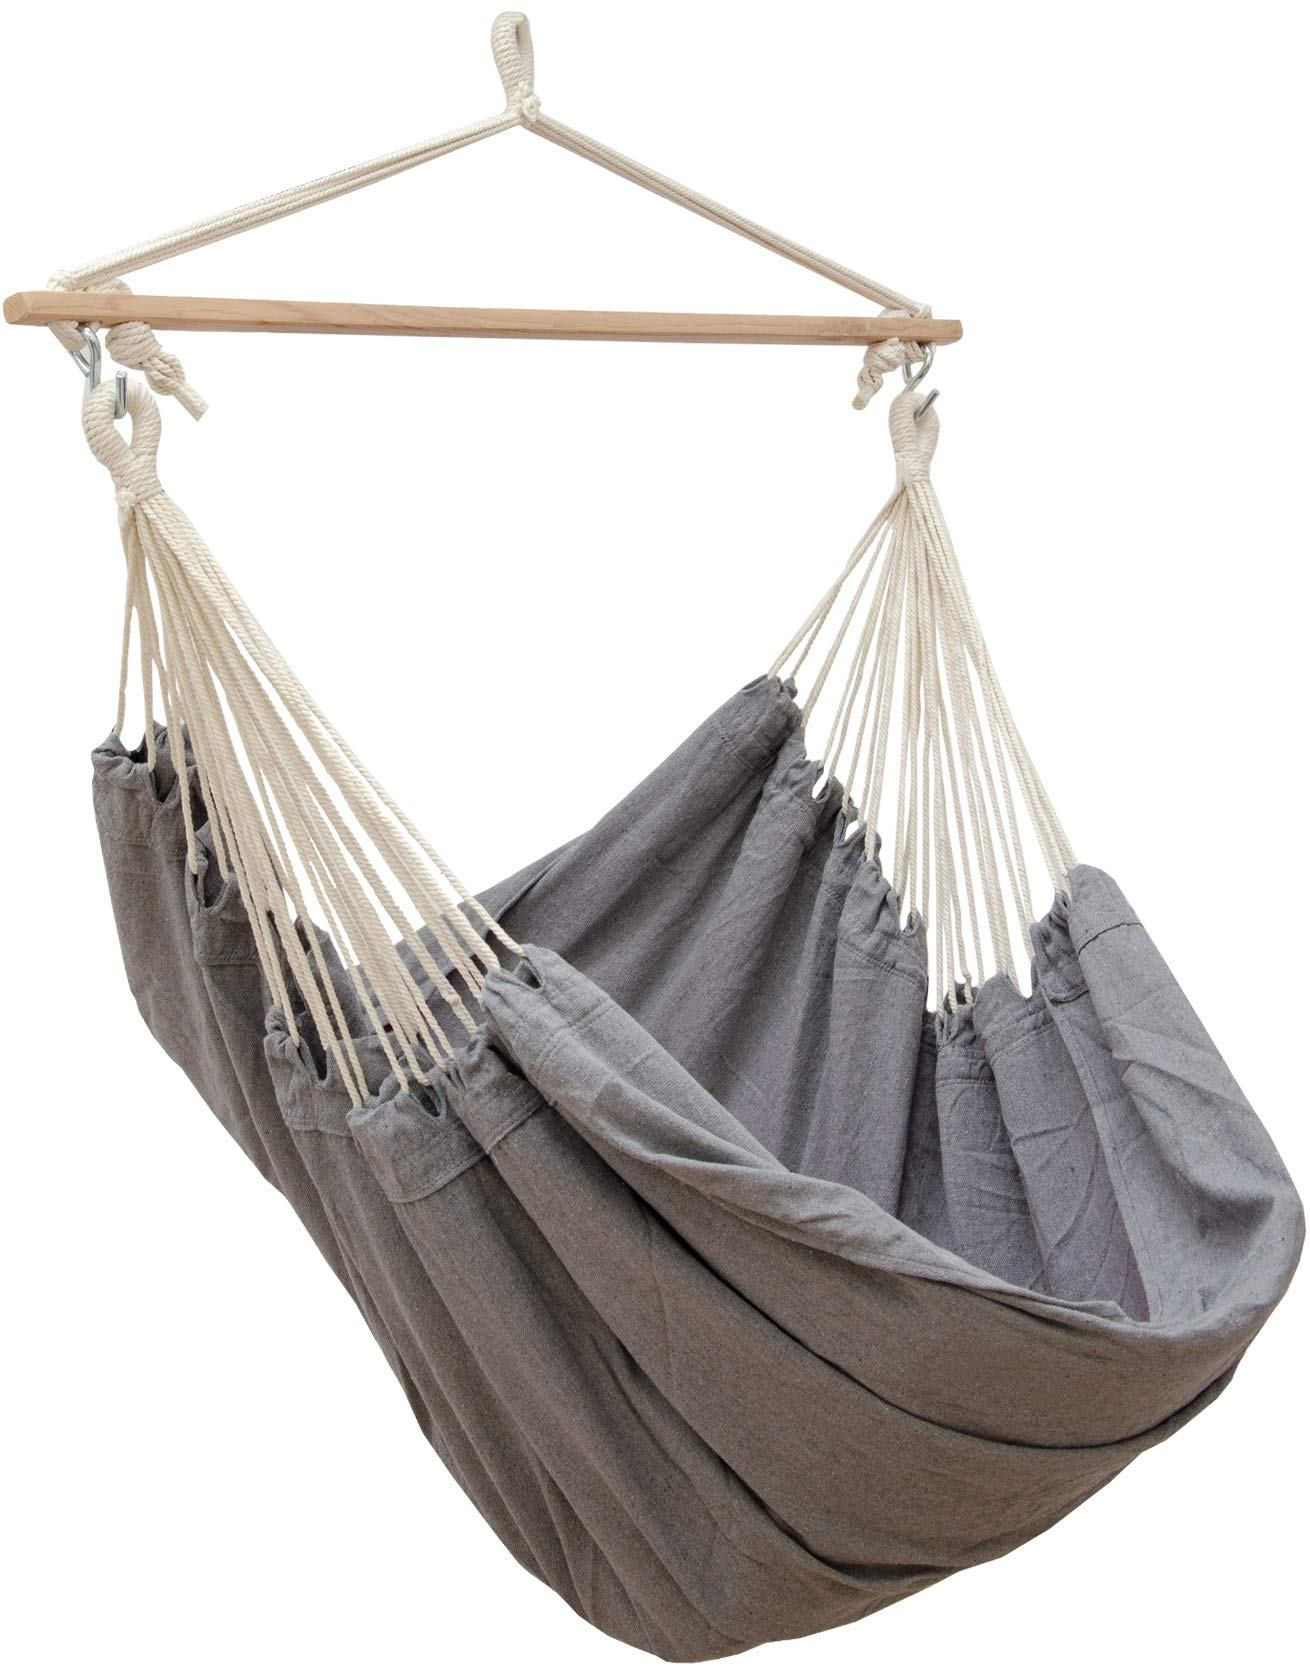 AMANKA Swing Hammock 185x130cm EXTRA-SAFE max 150Kg large cotton hanging chair XXL suspended swinging fabric seat Grey AMANKA SAFE HANGING SYSTEM - with this model there is no chance that the cloth slips out of the bar: our sturdy wooden bar is 115cm long and equipped on both ends with 3 holes in order to tie the ropes tightly and prevent any accident! COMFORTABLE - the breathable cotton fabric measures approx. 185cm in width and 130cm in length. This means that it can be used by any member of the family and not just for sitting down but also for comfortably lying down. Supported weight: max. 150kg 100% NATURAL COTTON - the fabric is resistant and durable (320g/m²), delicate even on direct contact with your skin. The huge cloth is hung on 2 S-shaped metal hooks and can be quickly washed in the washing machine at 30°C 1